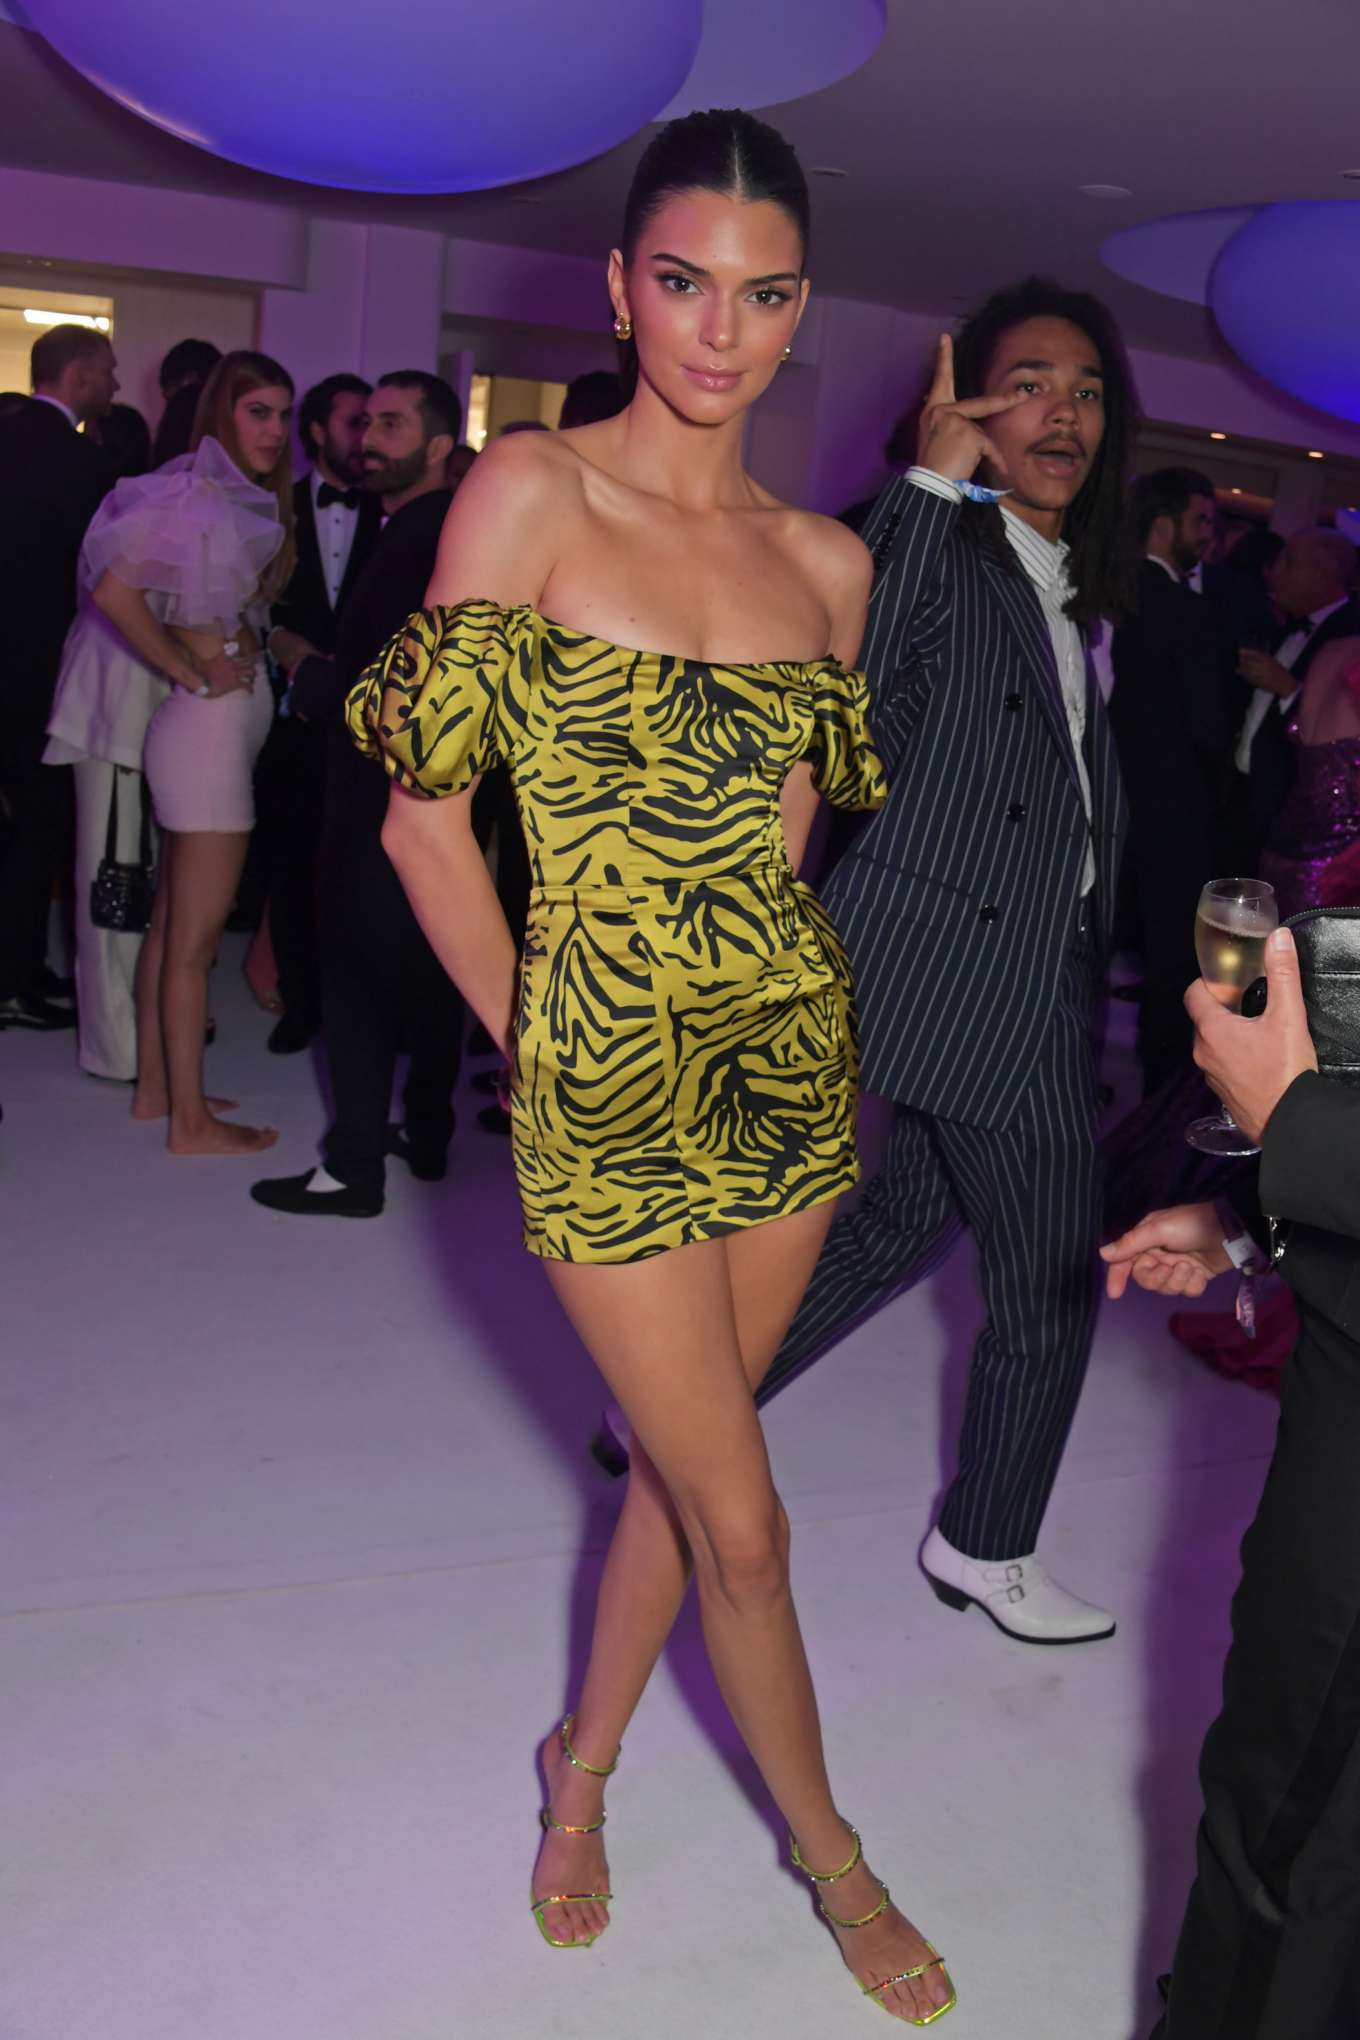 Kendall Jenner donning strappy gold yellow open toe sandals with high heel and thin straps